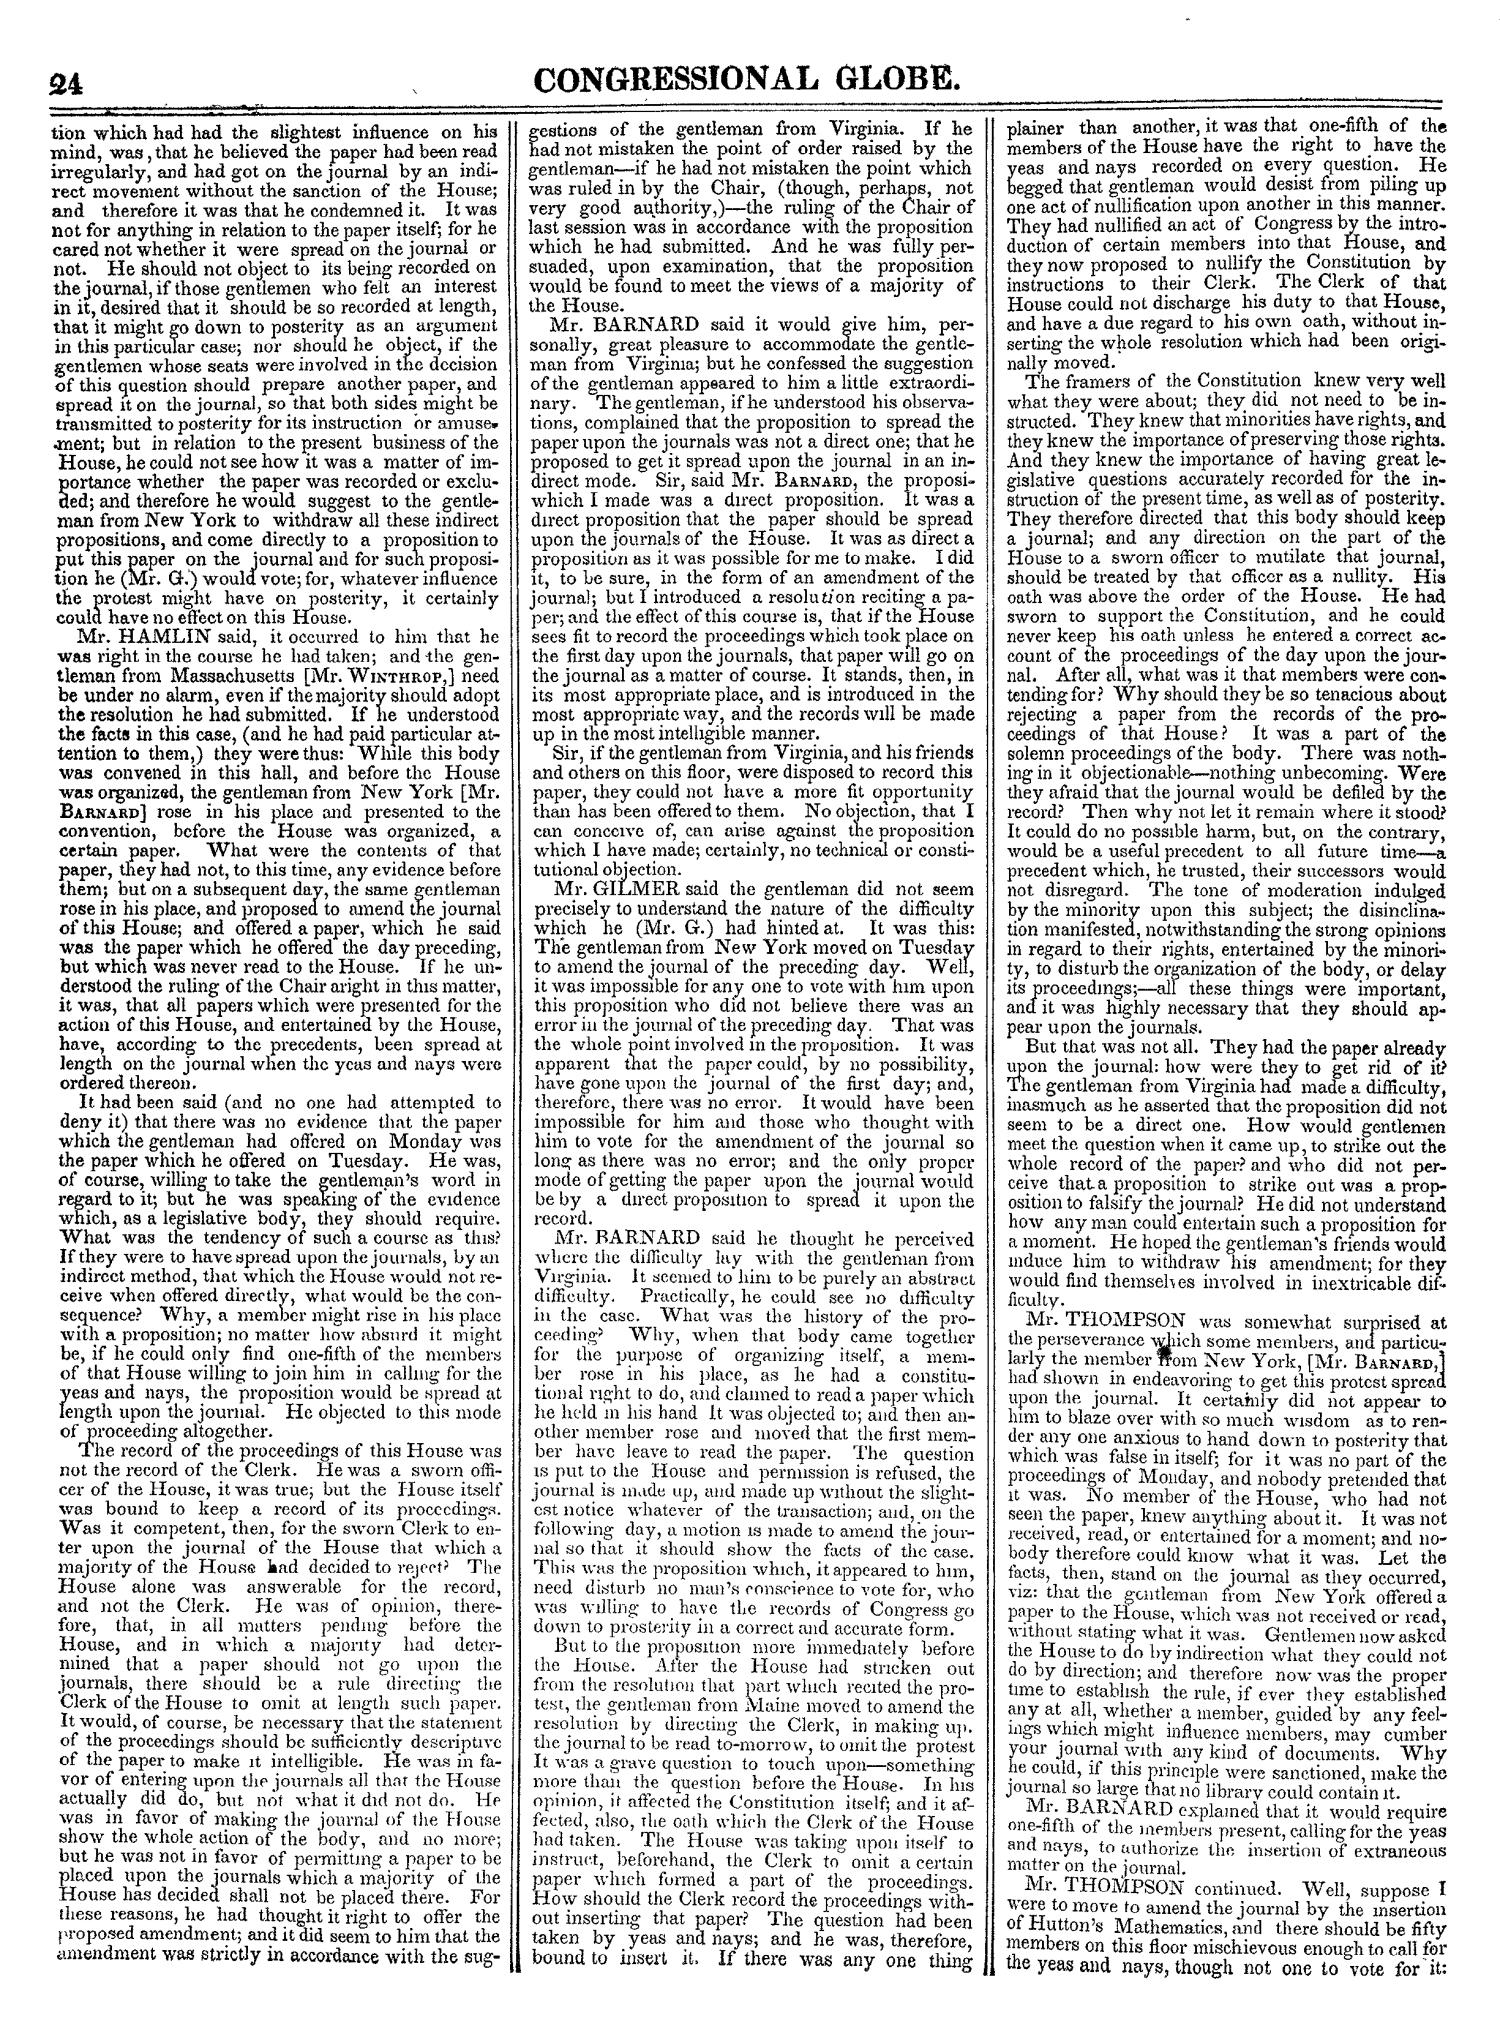 The Congressional Globe, Volume 13, Part 1: Twenty-Eighth Congress, First Session                                                                                                      24